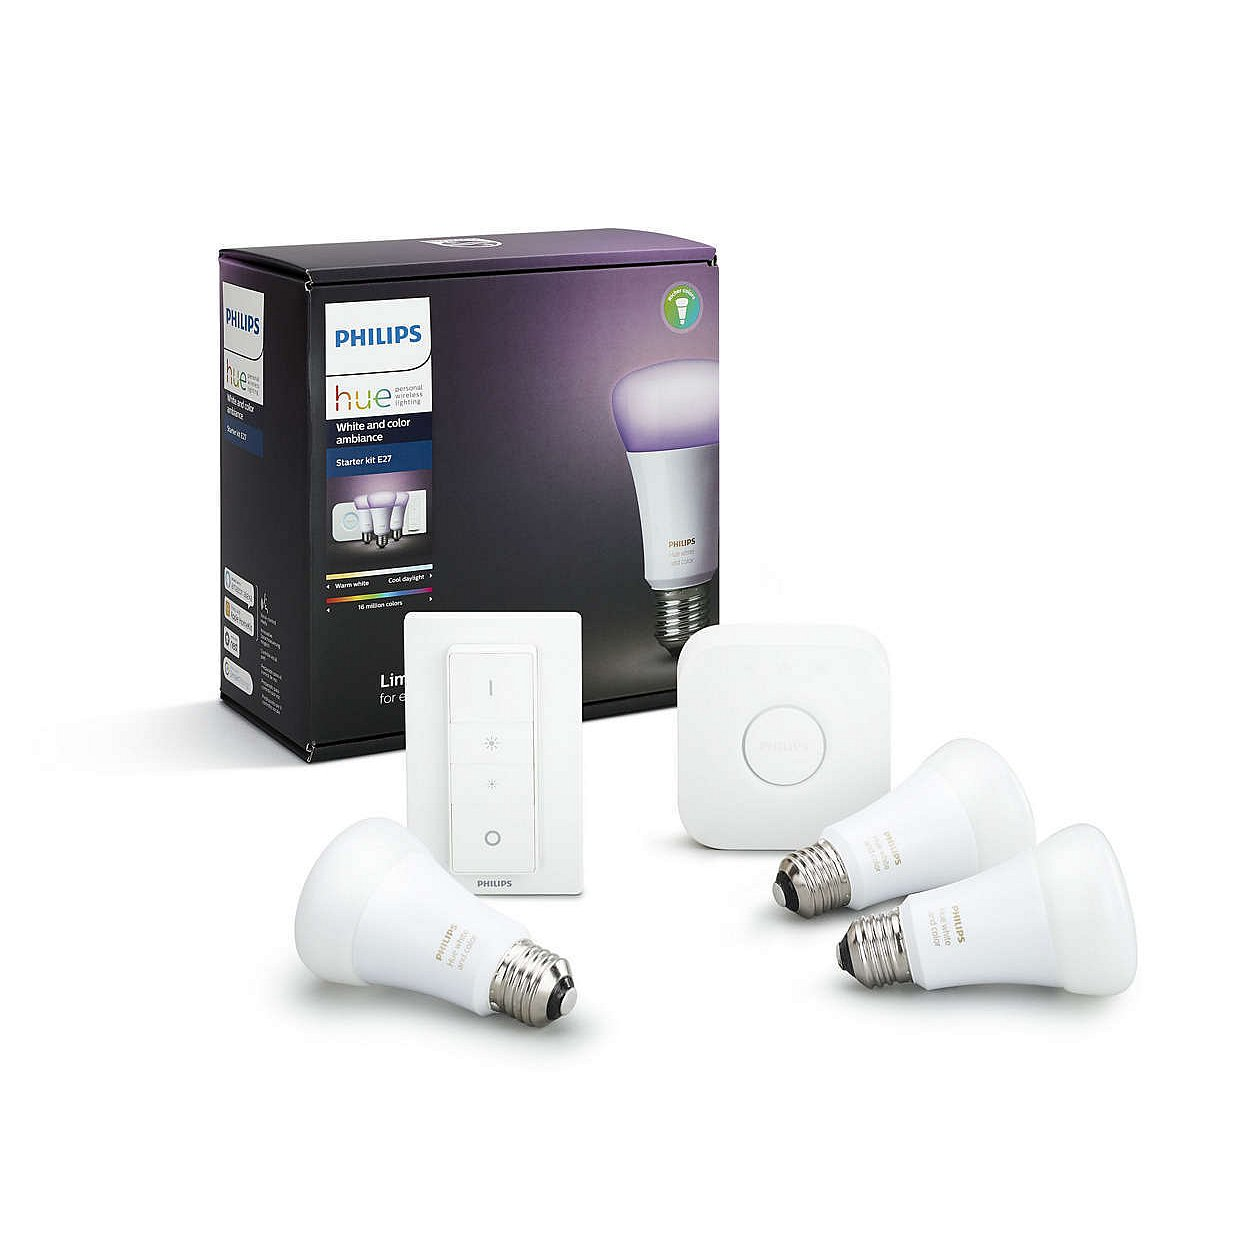 Startovací sada Philips Hue white and color ambiance 3×E27